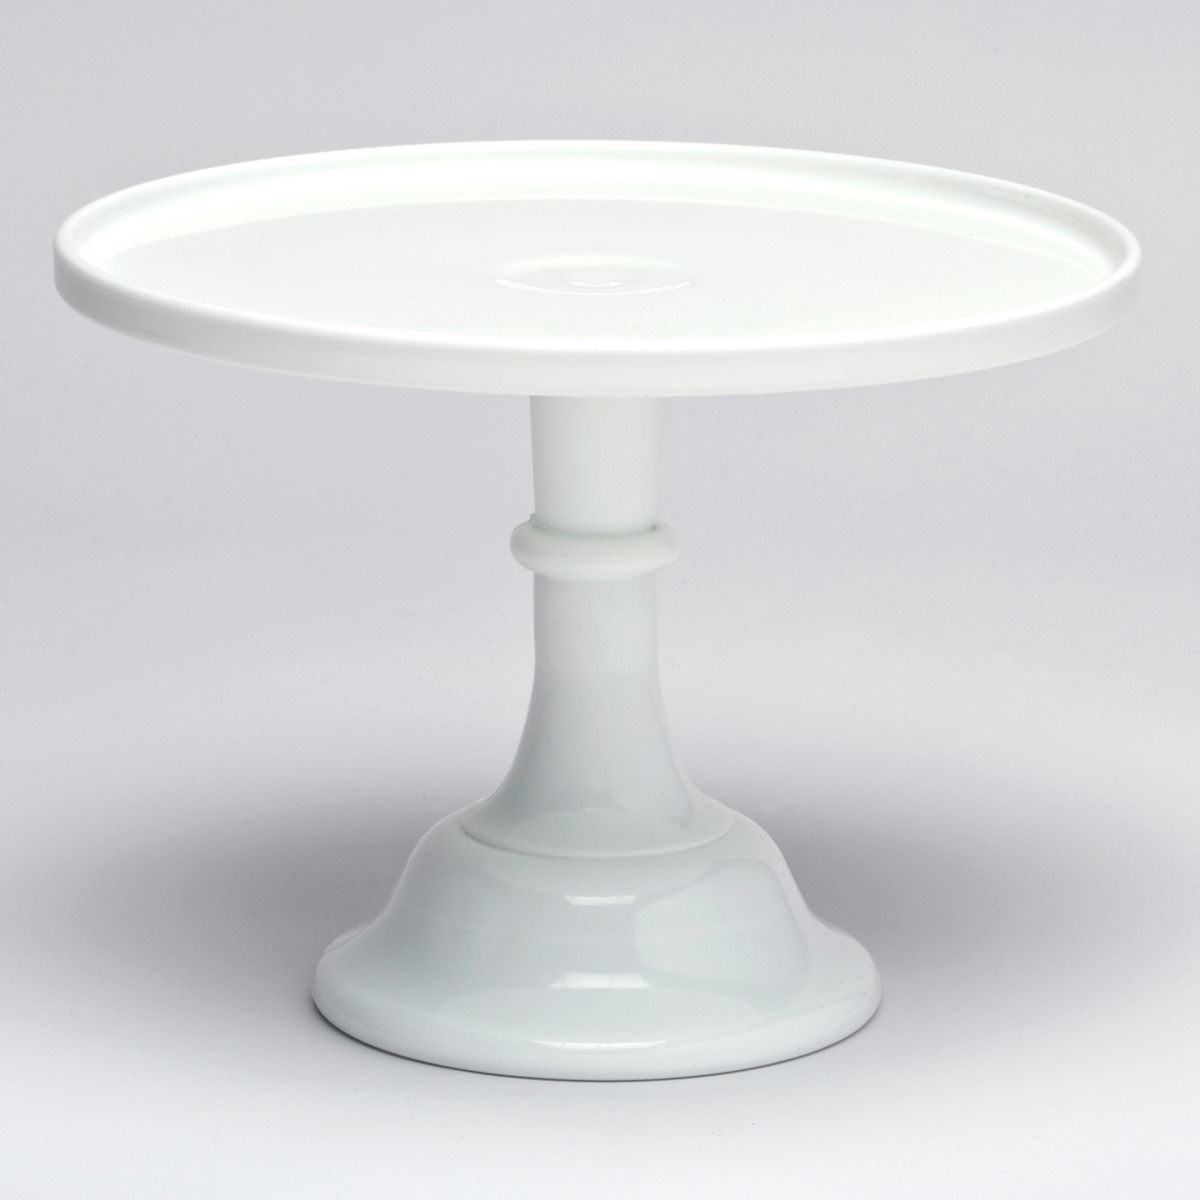 In Wedding Cake Stands